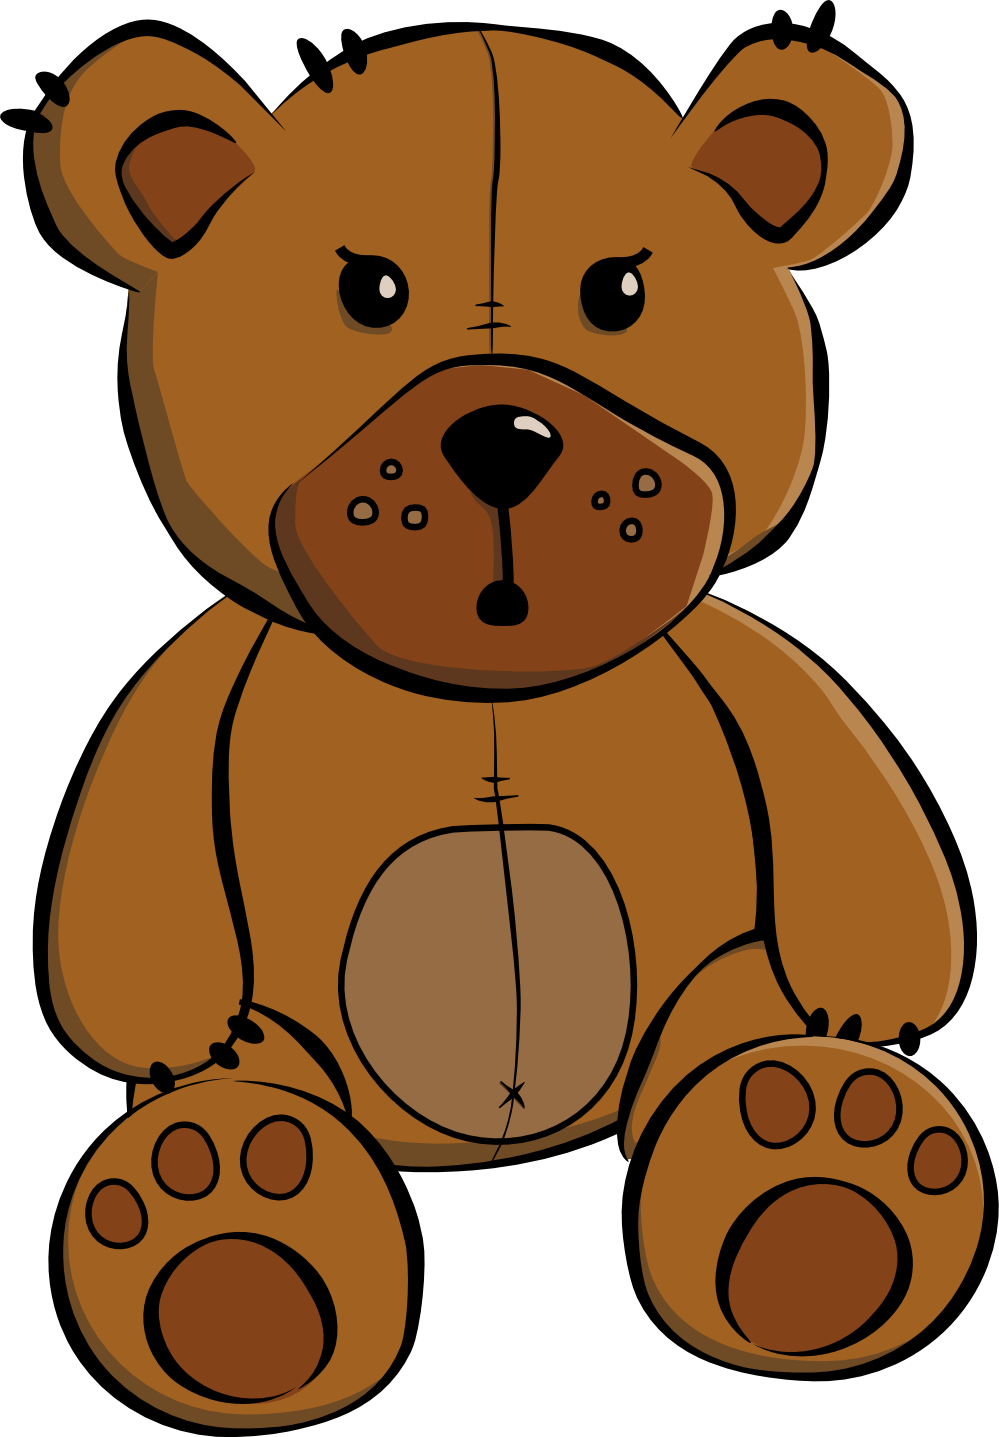 teddy bears clip art free download - photo #26